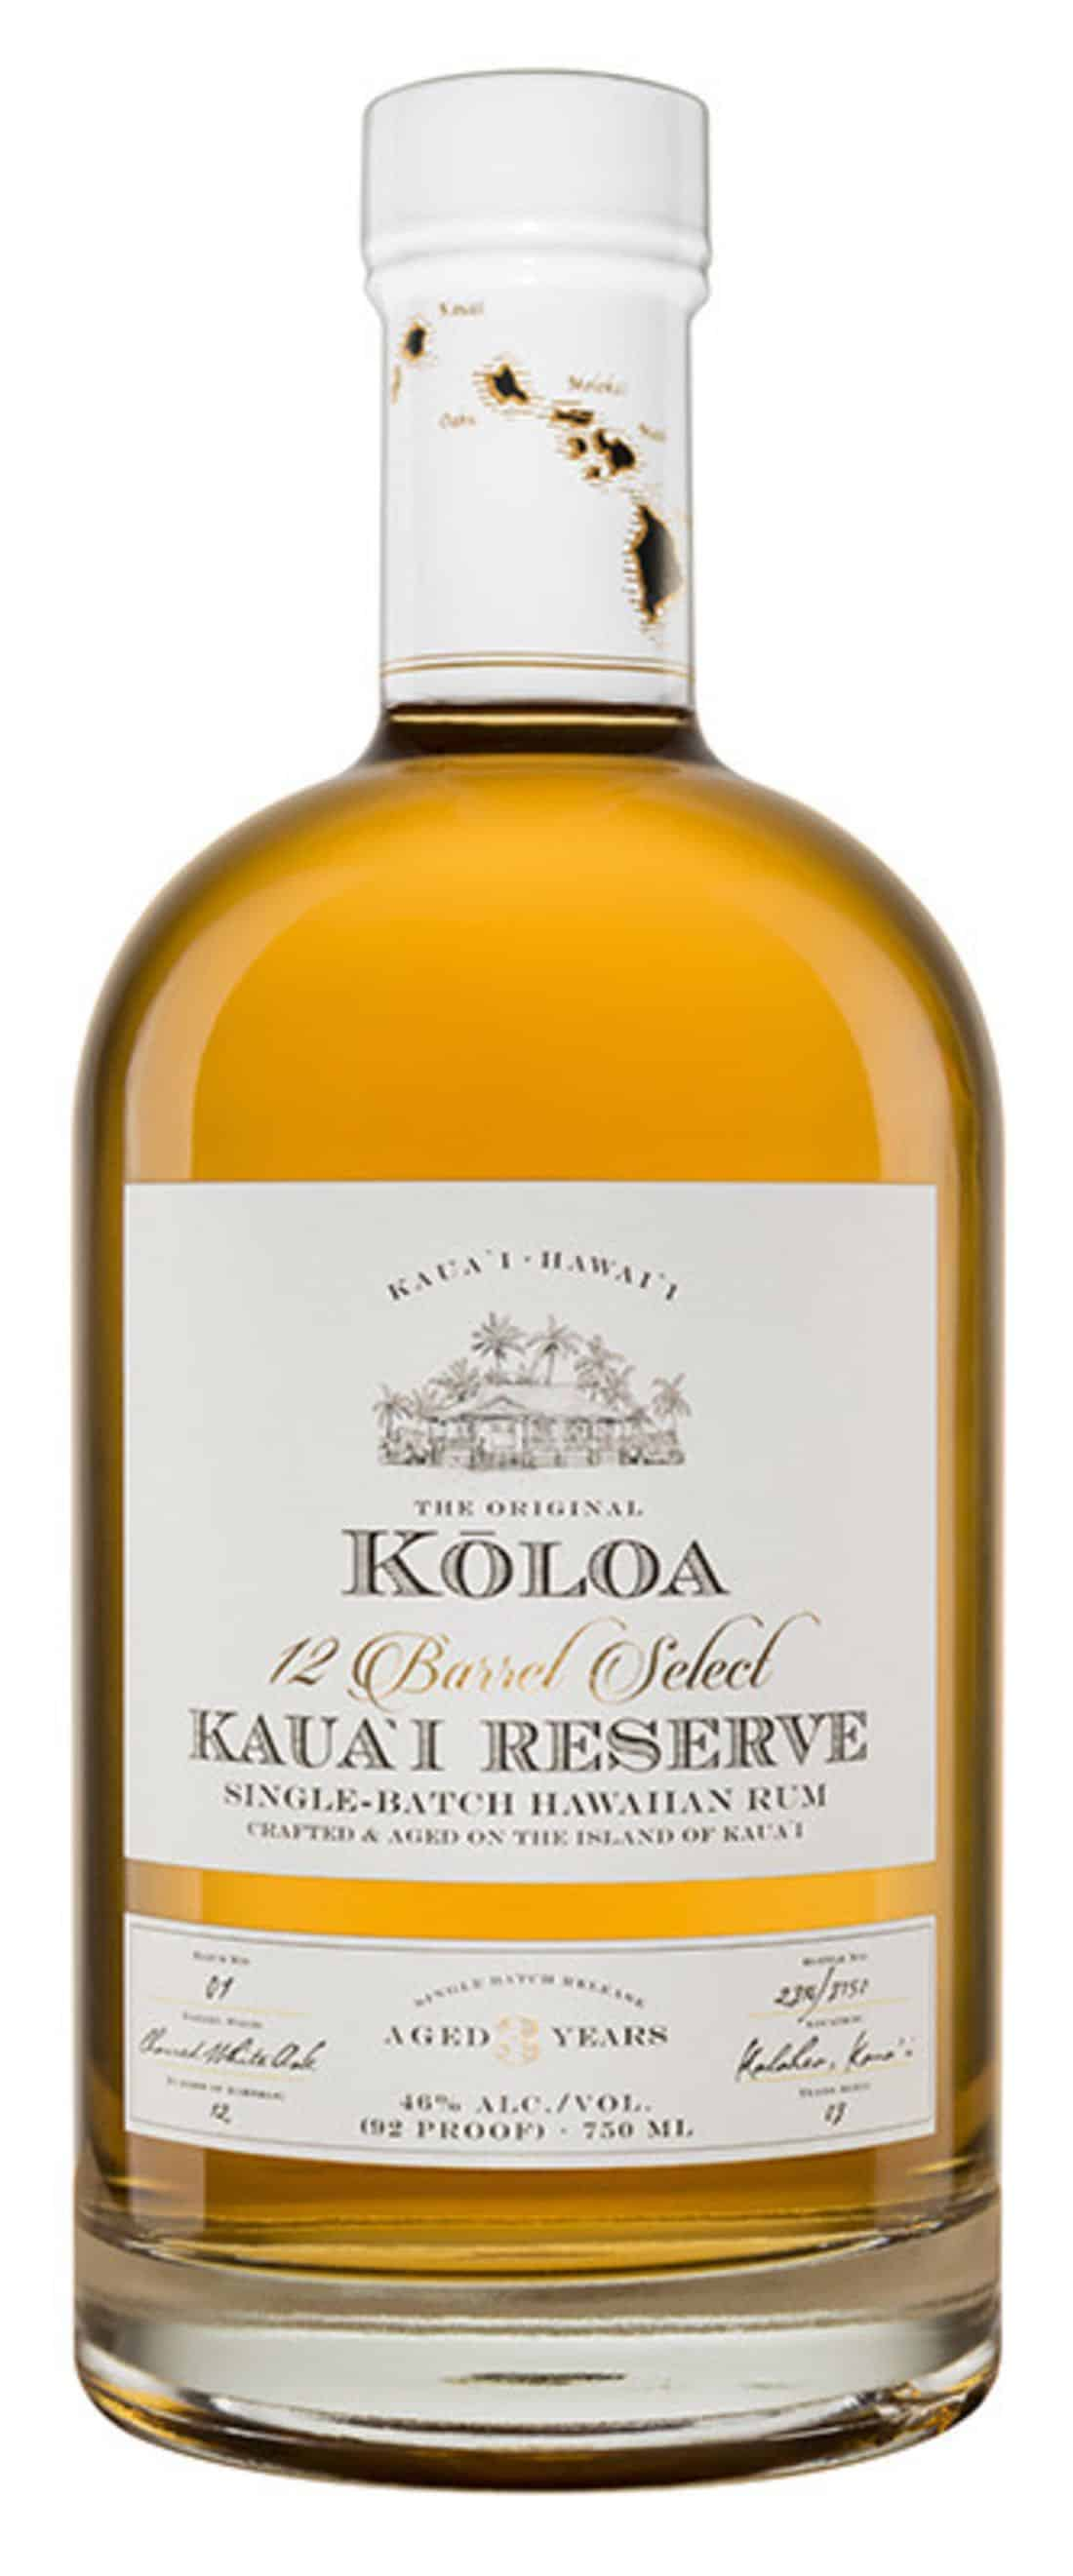 Kauai-Reserve-Three-Year-Aged-Hawaiian-Rum-333x800-px